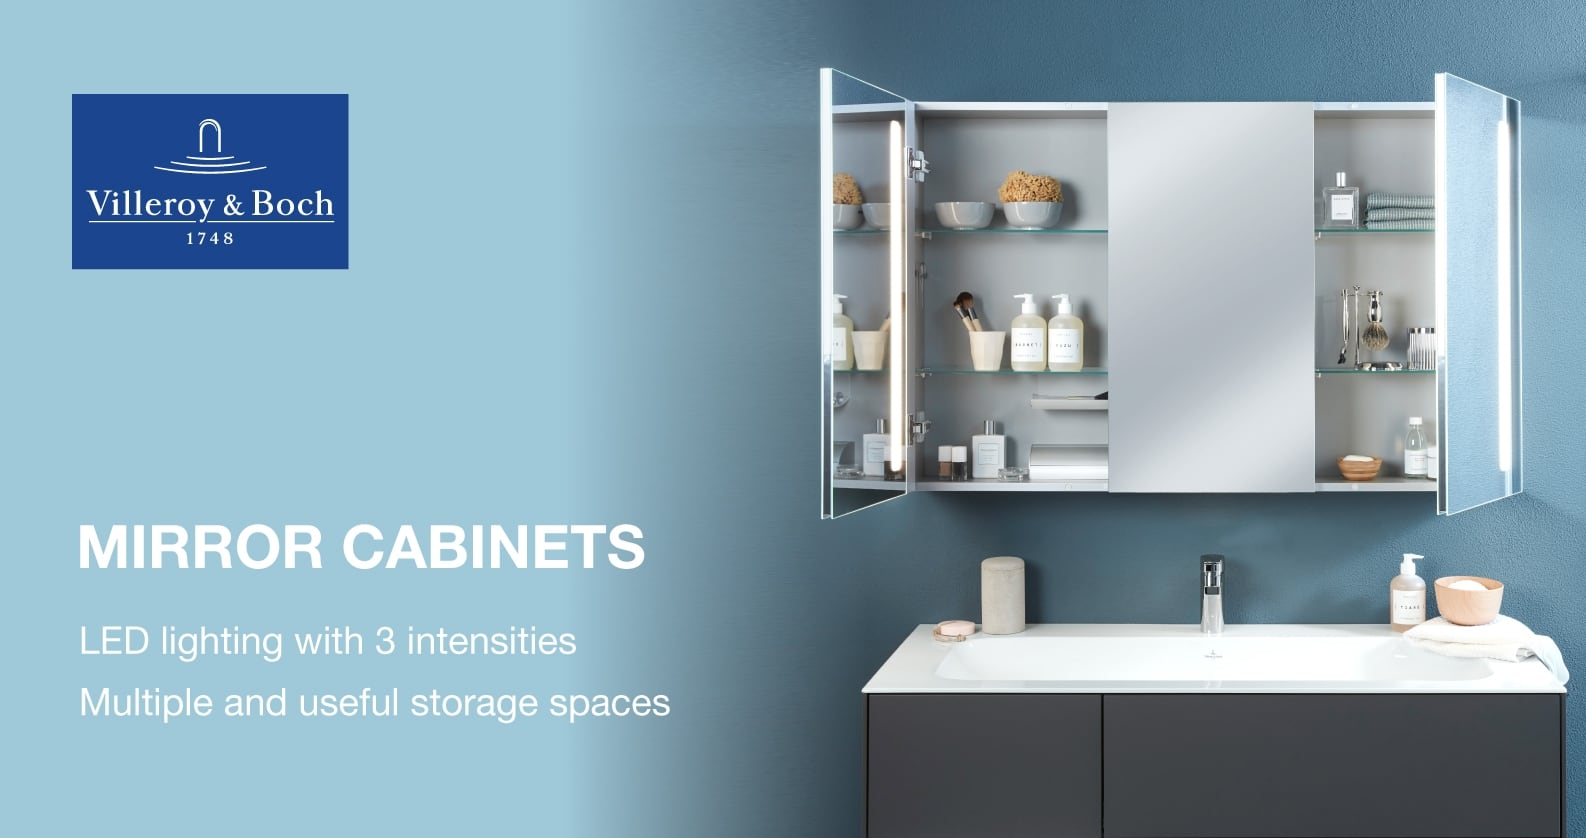 Villeroy & Boch Mirror Cabinets at xTWO